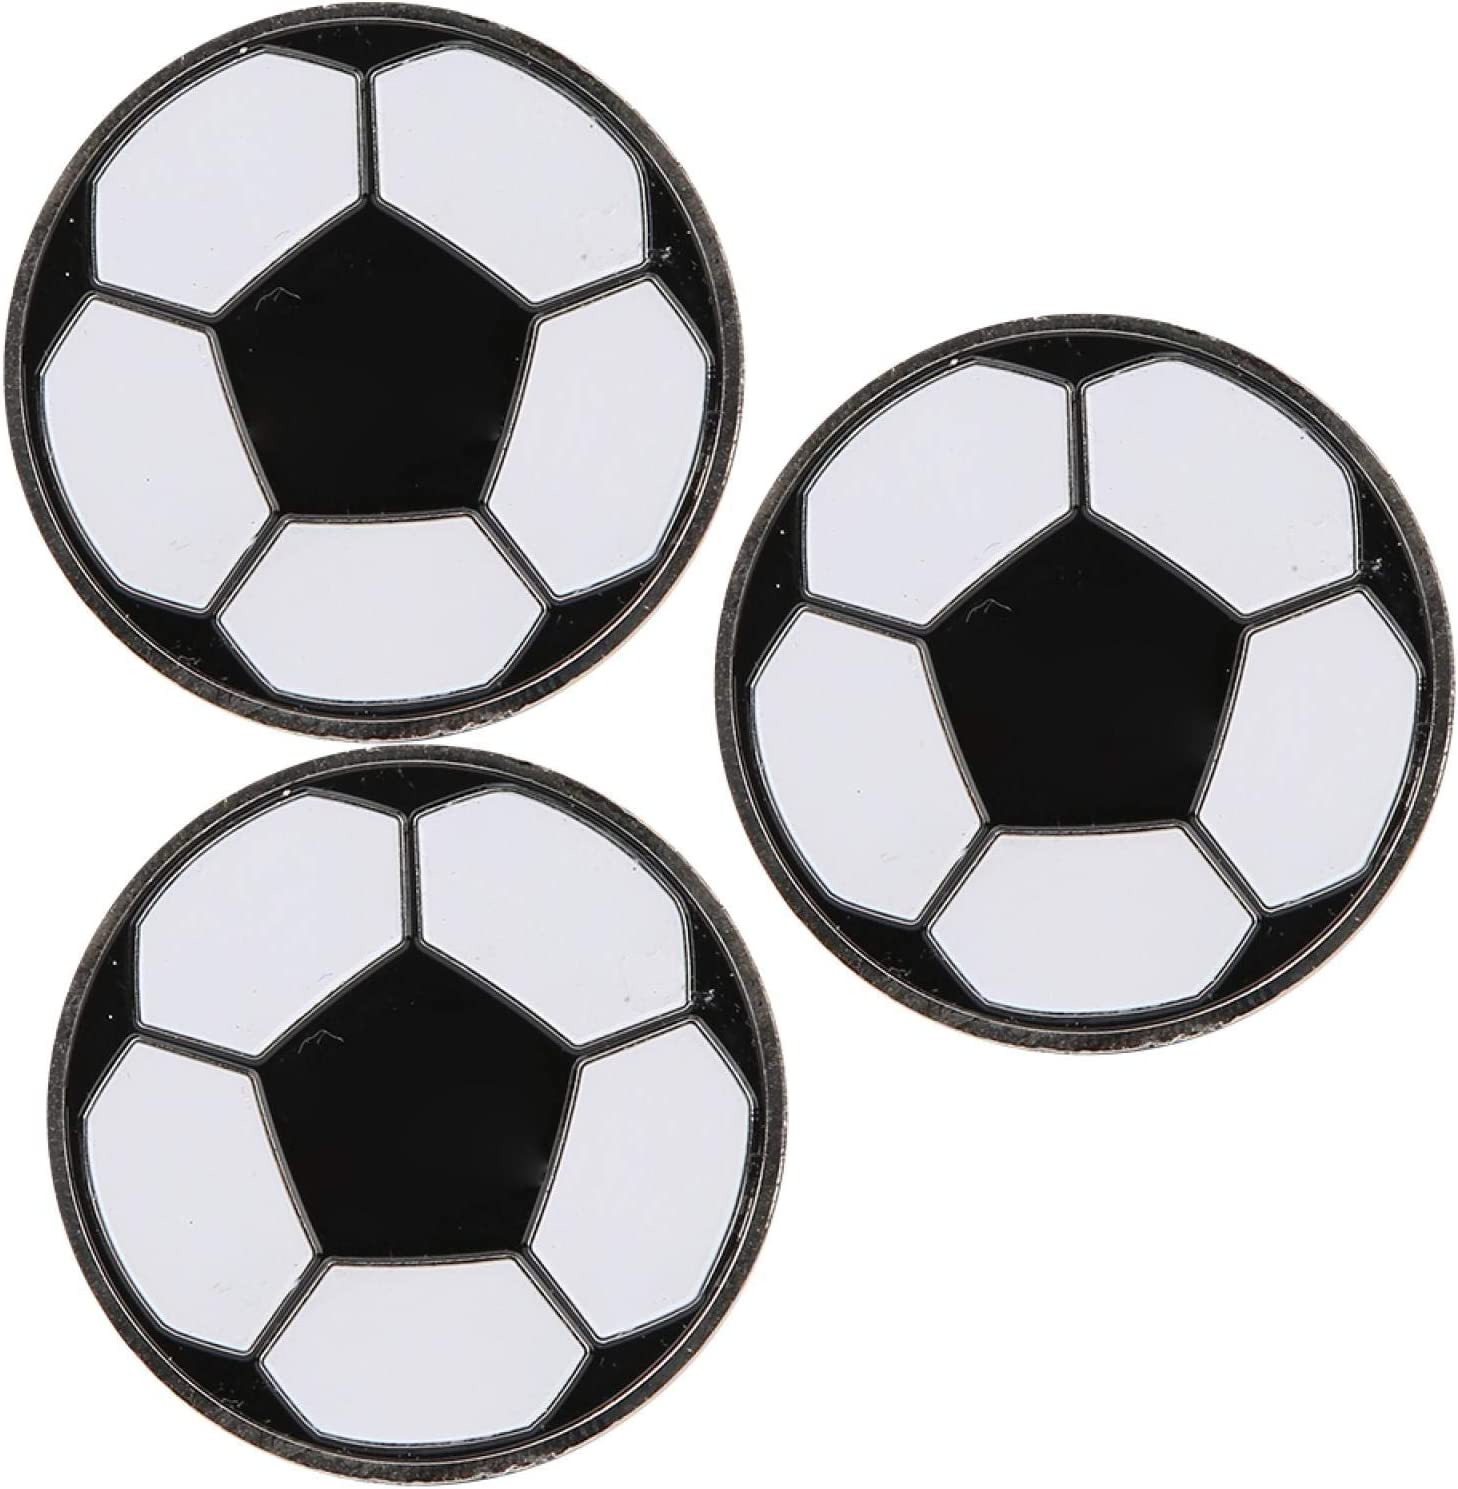 Soccer 2021new Fashionable shipping free Toss Coin 3pcs Portable Training Football Referee F Match